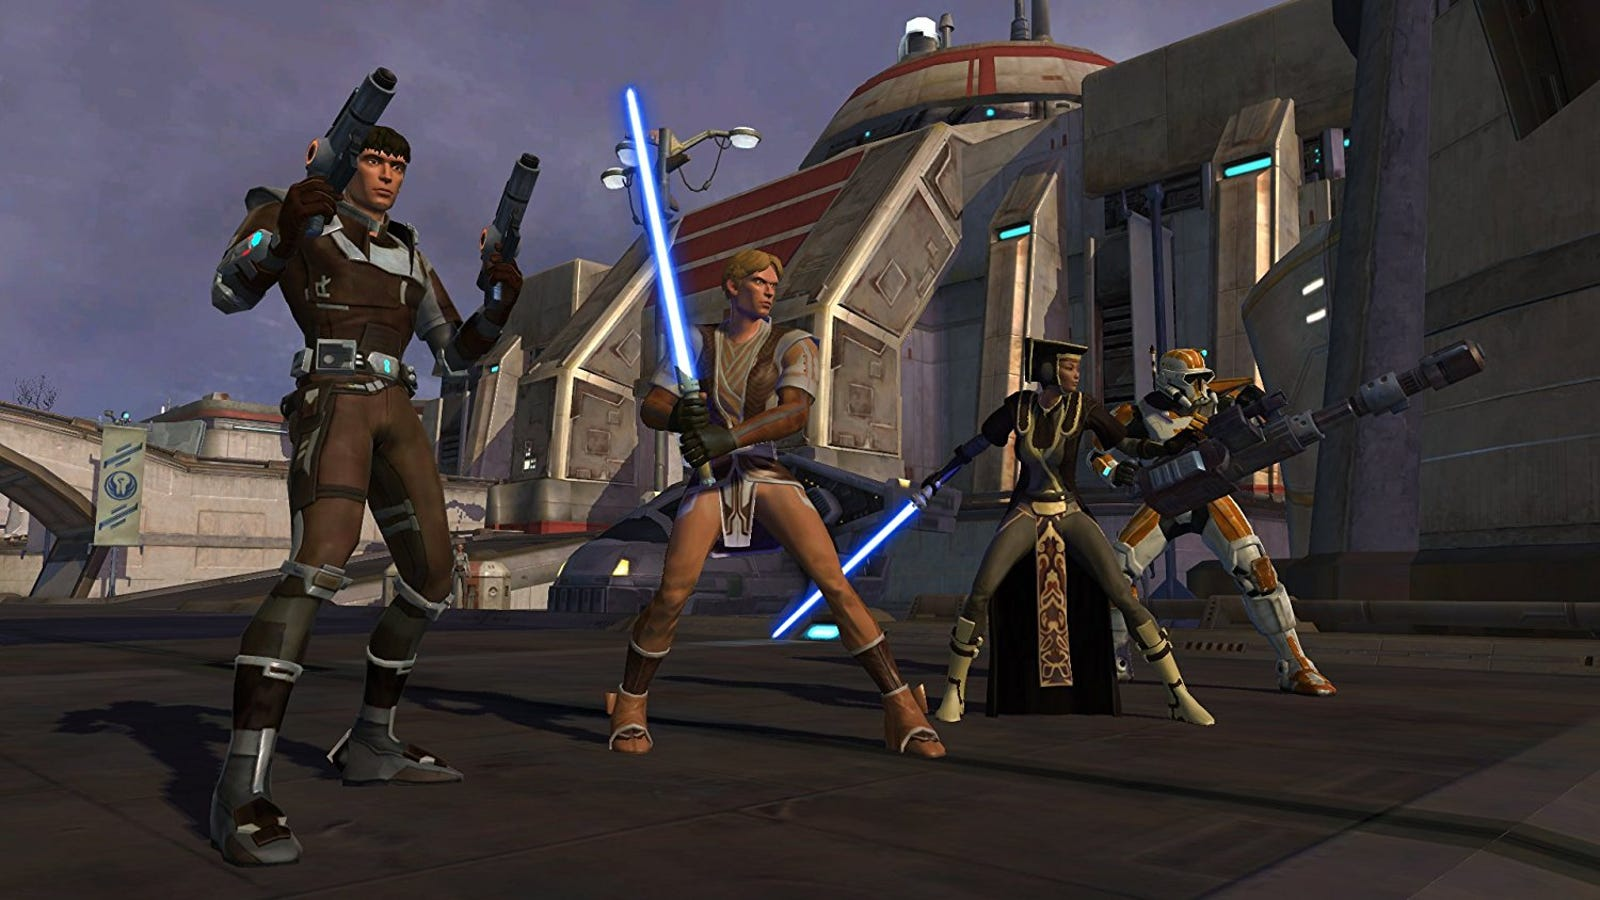 Looking Back On My Former Life In Star Wars: The Old Republic